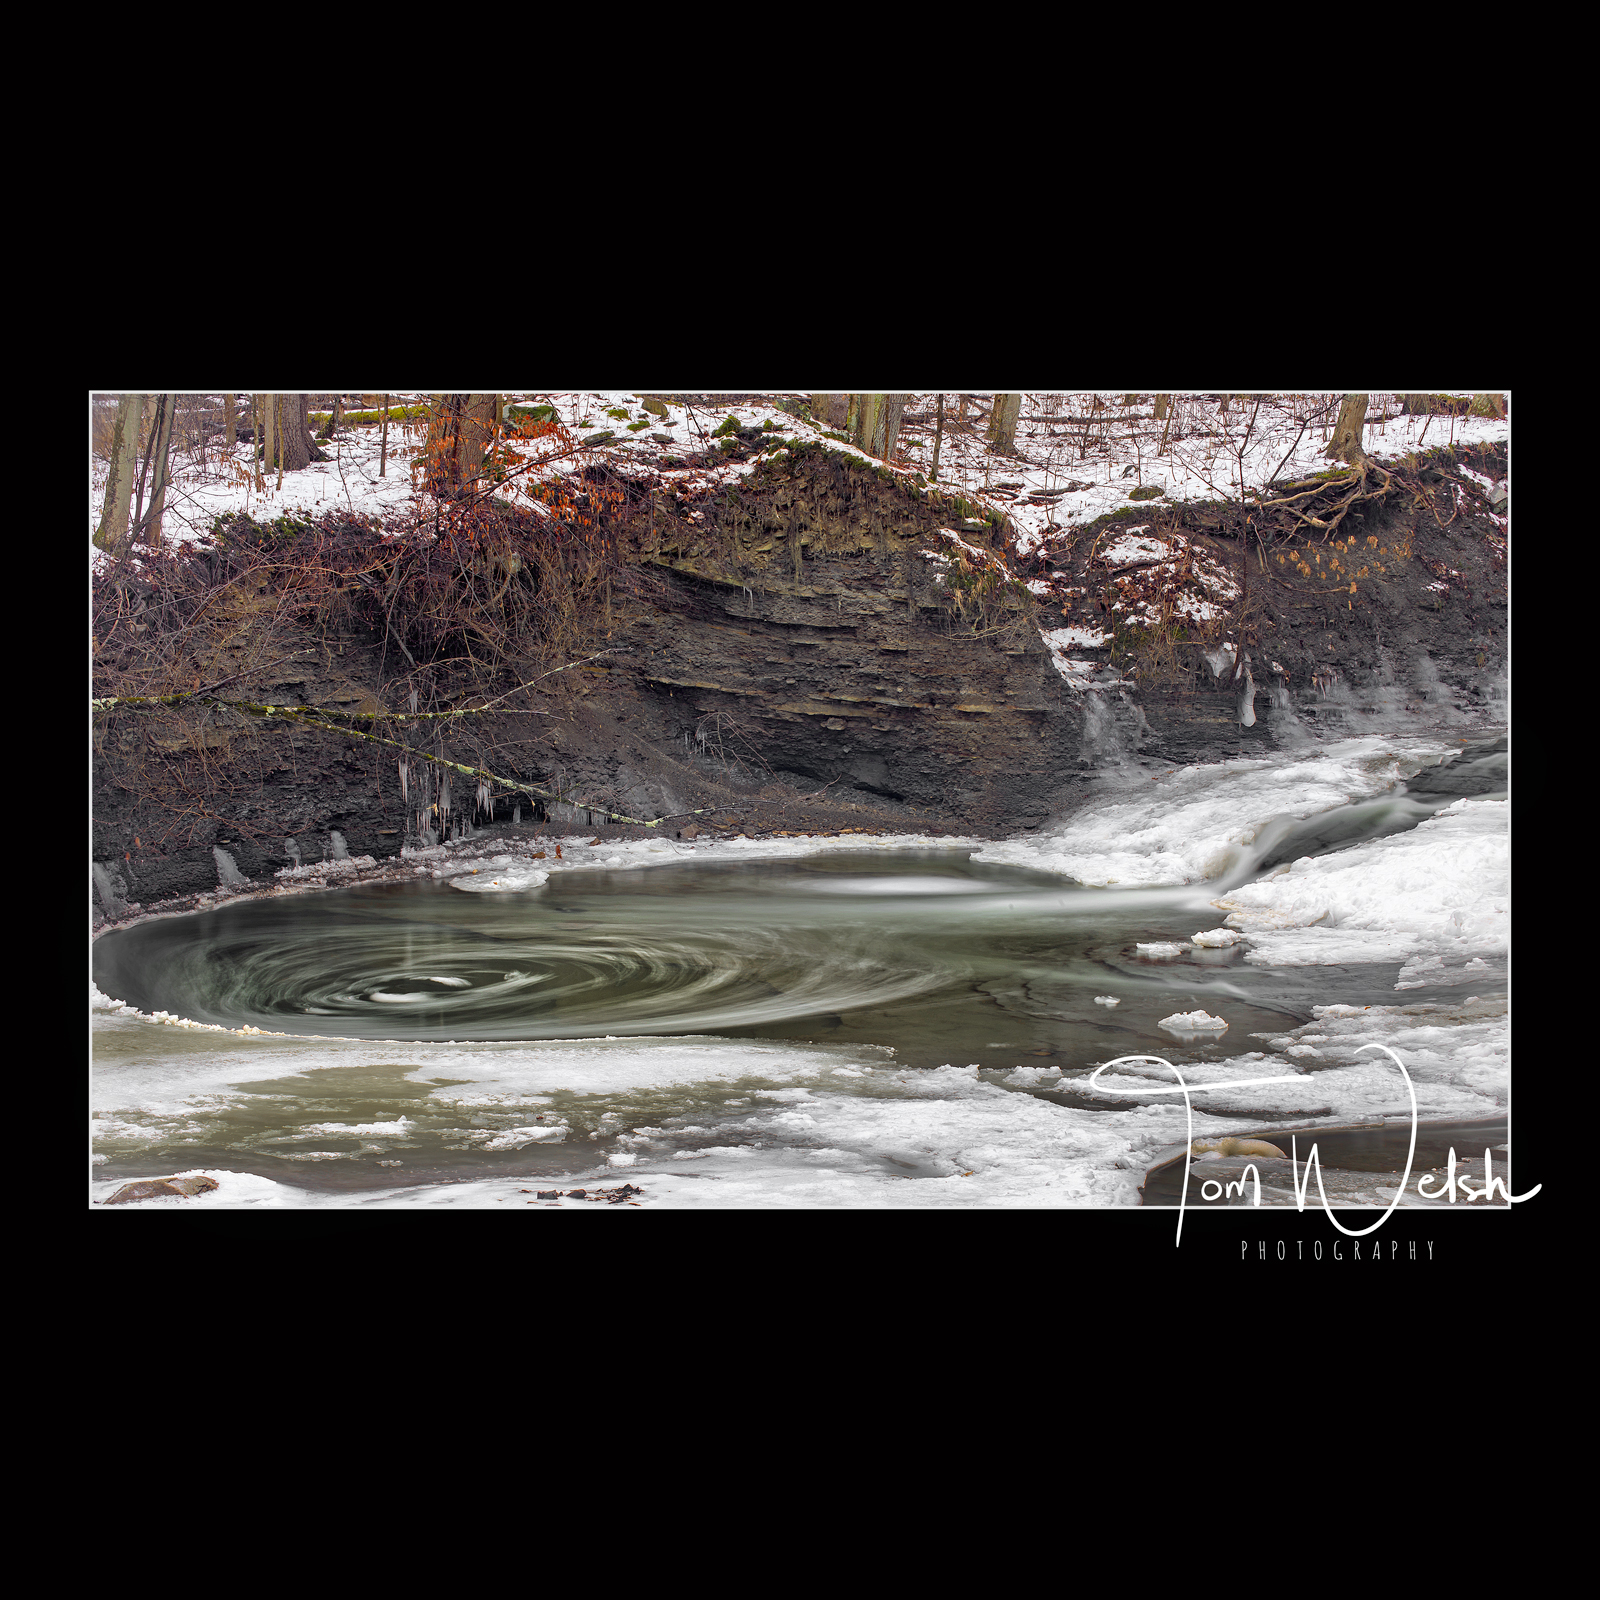 Water swirls as it tries to escape the frozen pool along the stream bed below the falls